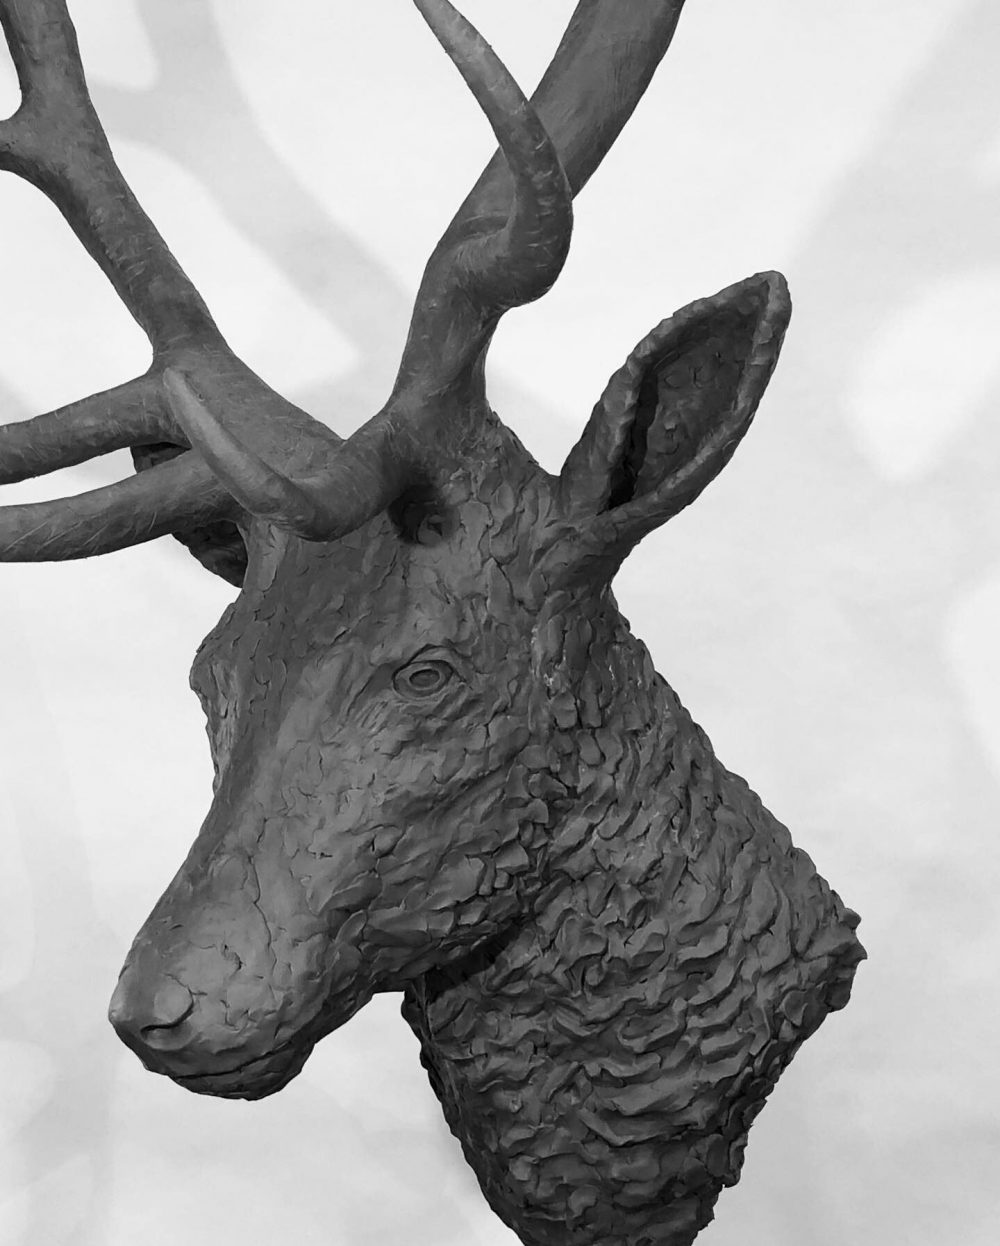 stag head sculpture close side view